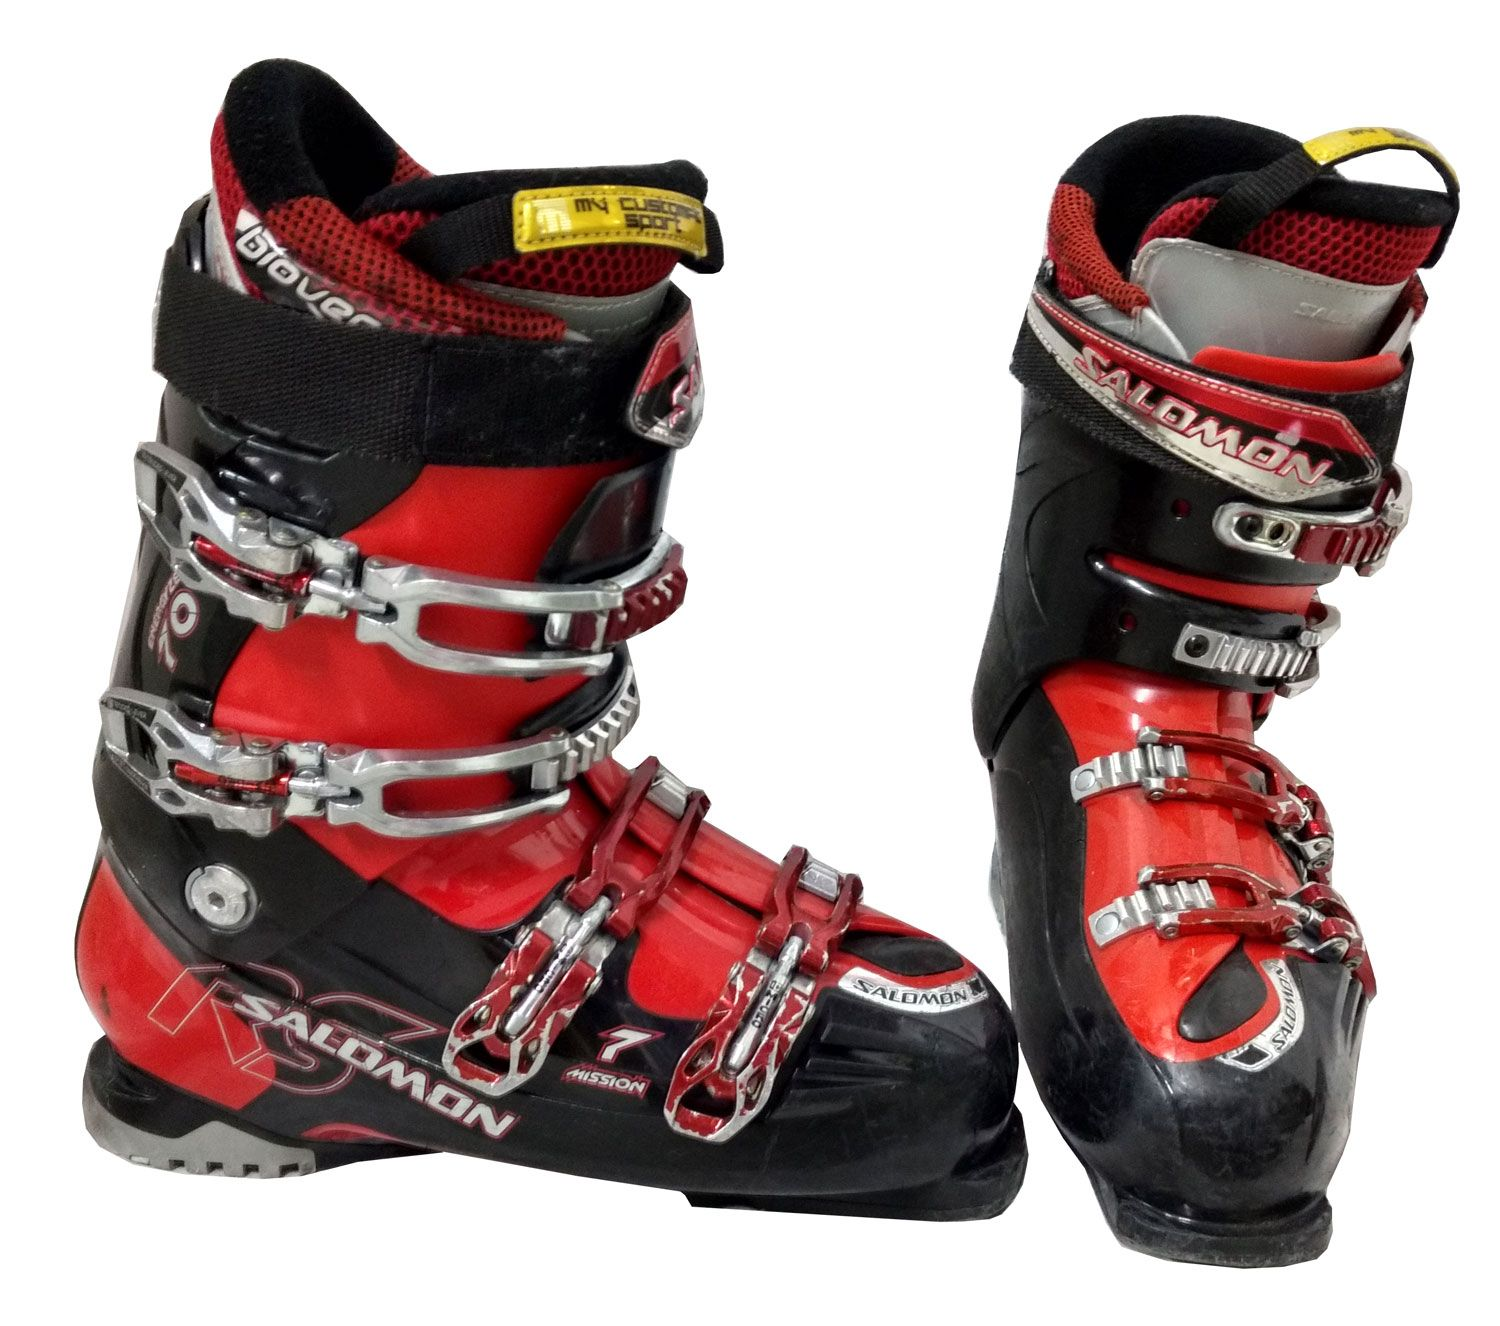 Salomon Mission Rs 7 Ski Boot Red Black Silver Used Ski Boots Boots Skiing